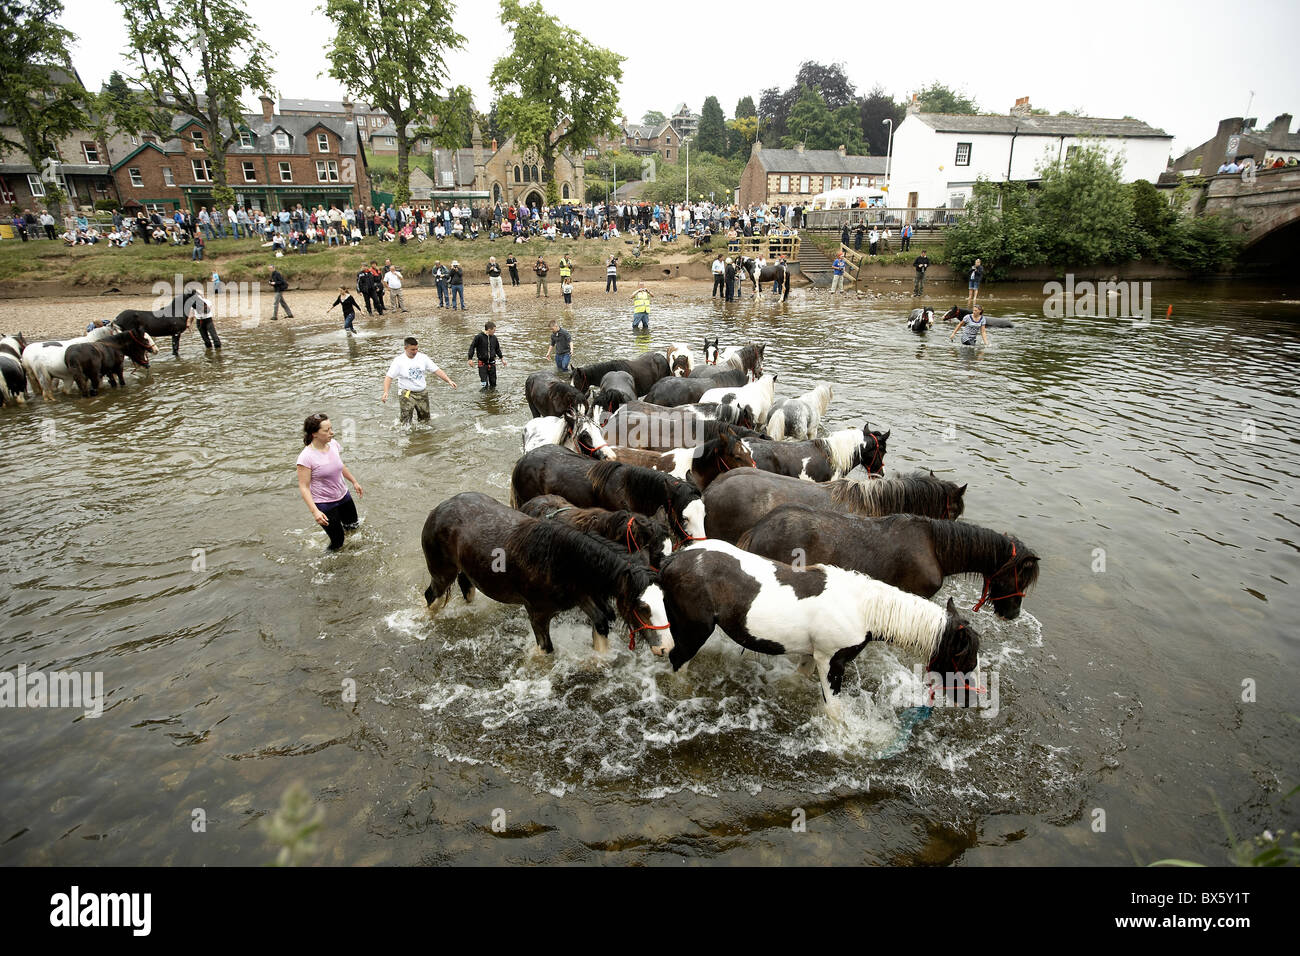 Travellers washing their horses in the river at the Appleby Horse Fair, Cumbria 2010 - Stock Image